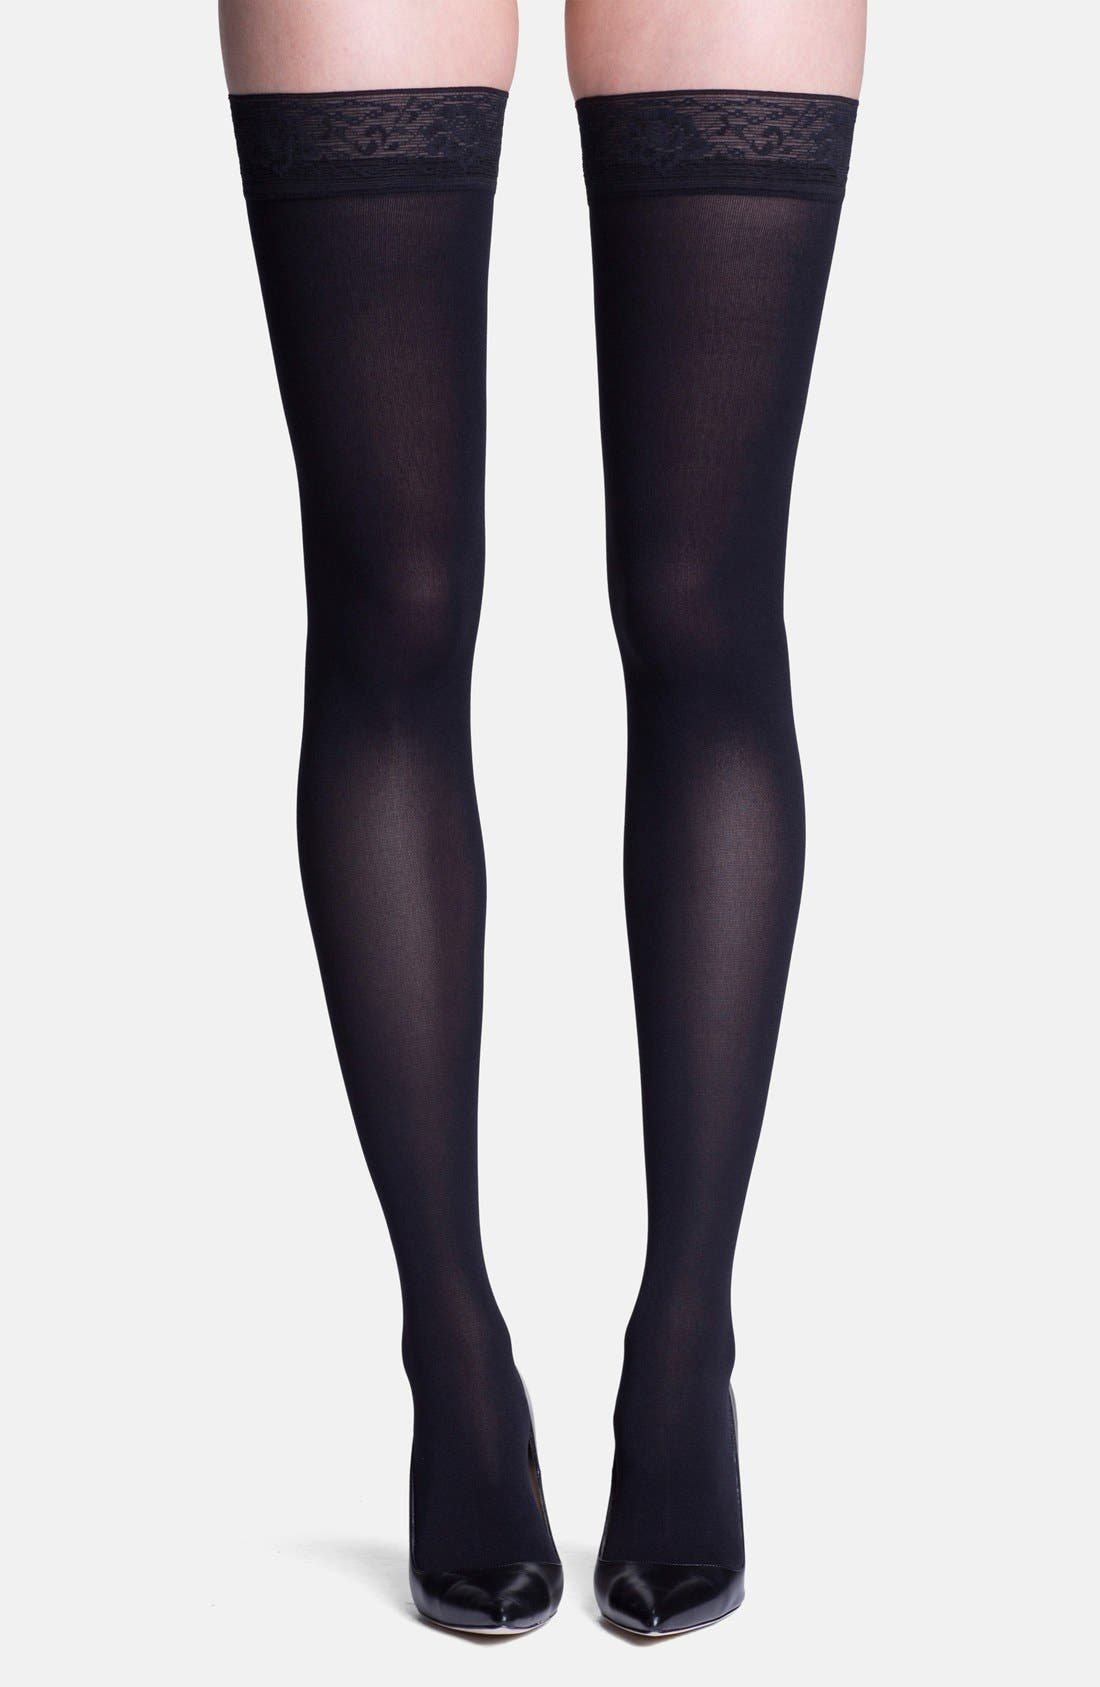 INSIGNIA by SIGVARIS 'Headliner' Graduated Compression Thigh Highs